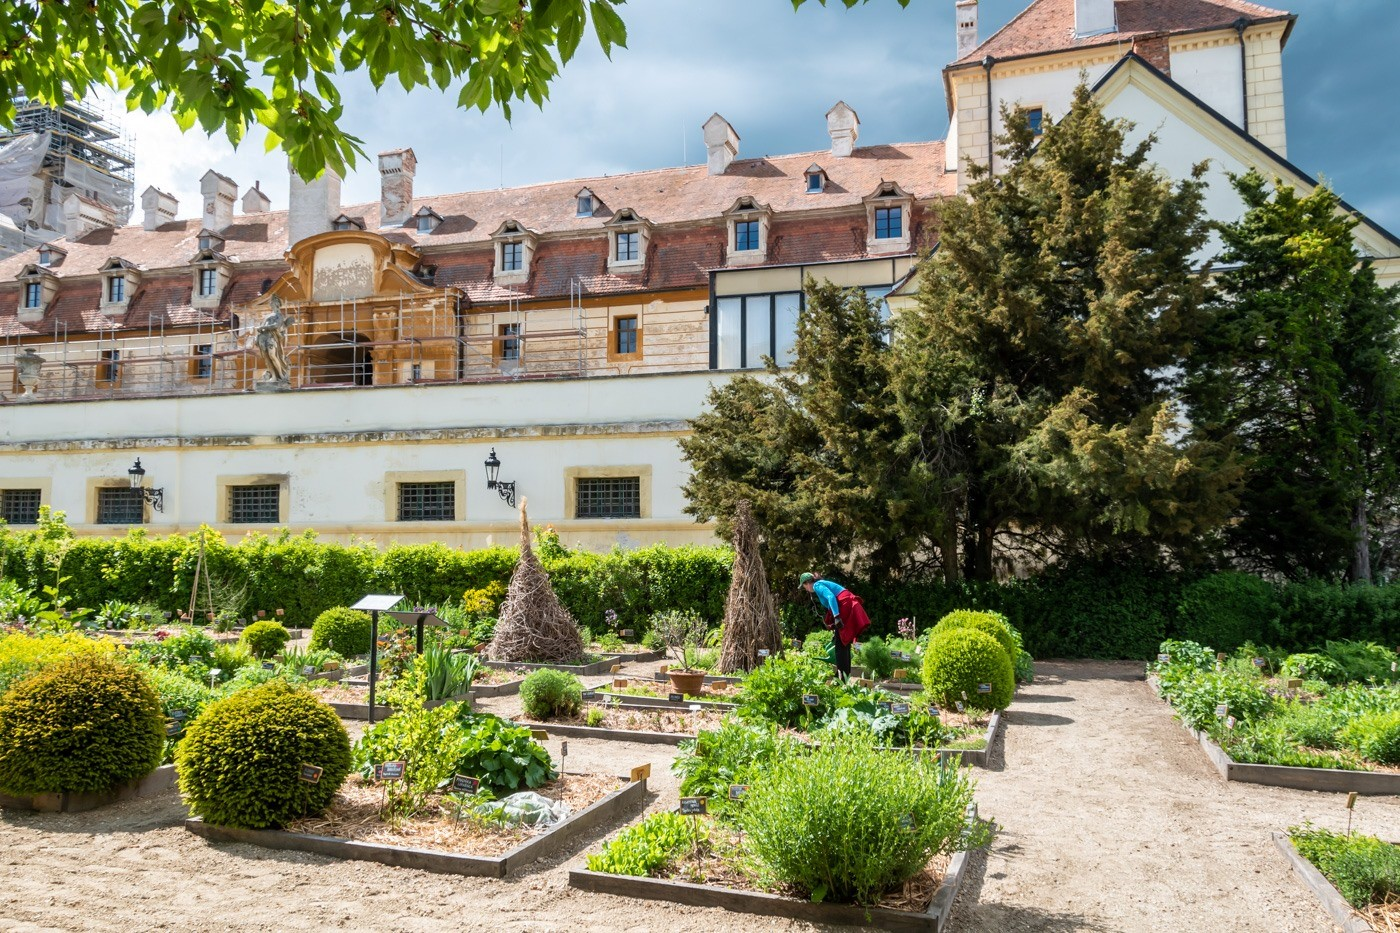 The Ornately Organized Herb Gardens of Valtice Chateau